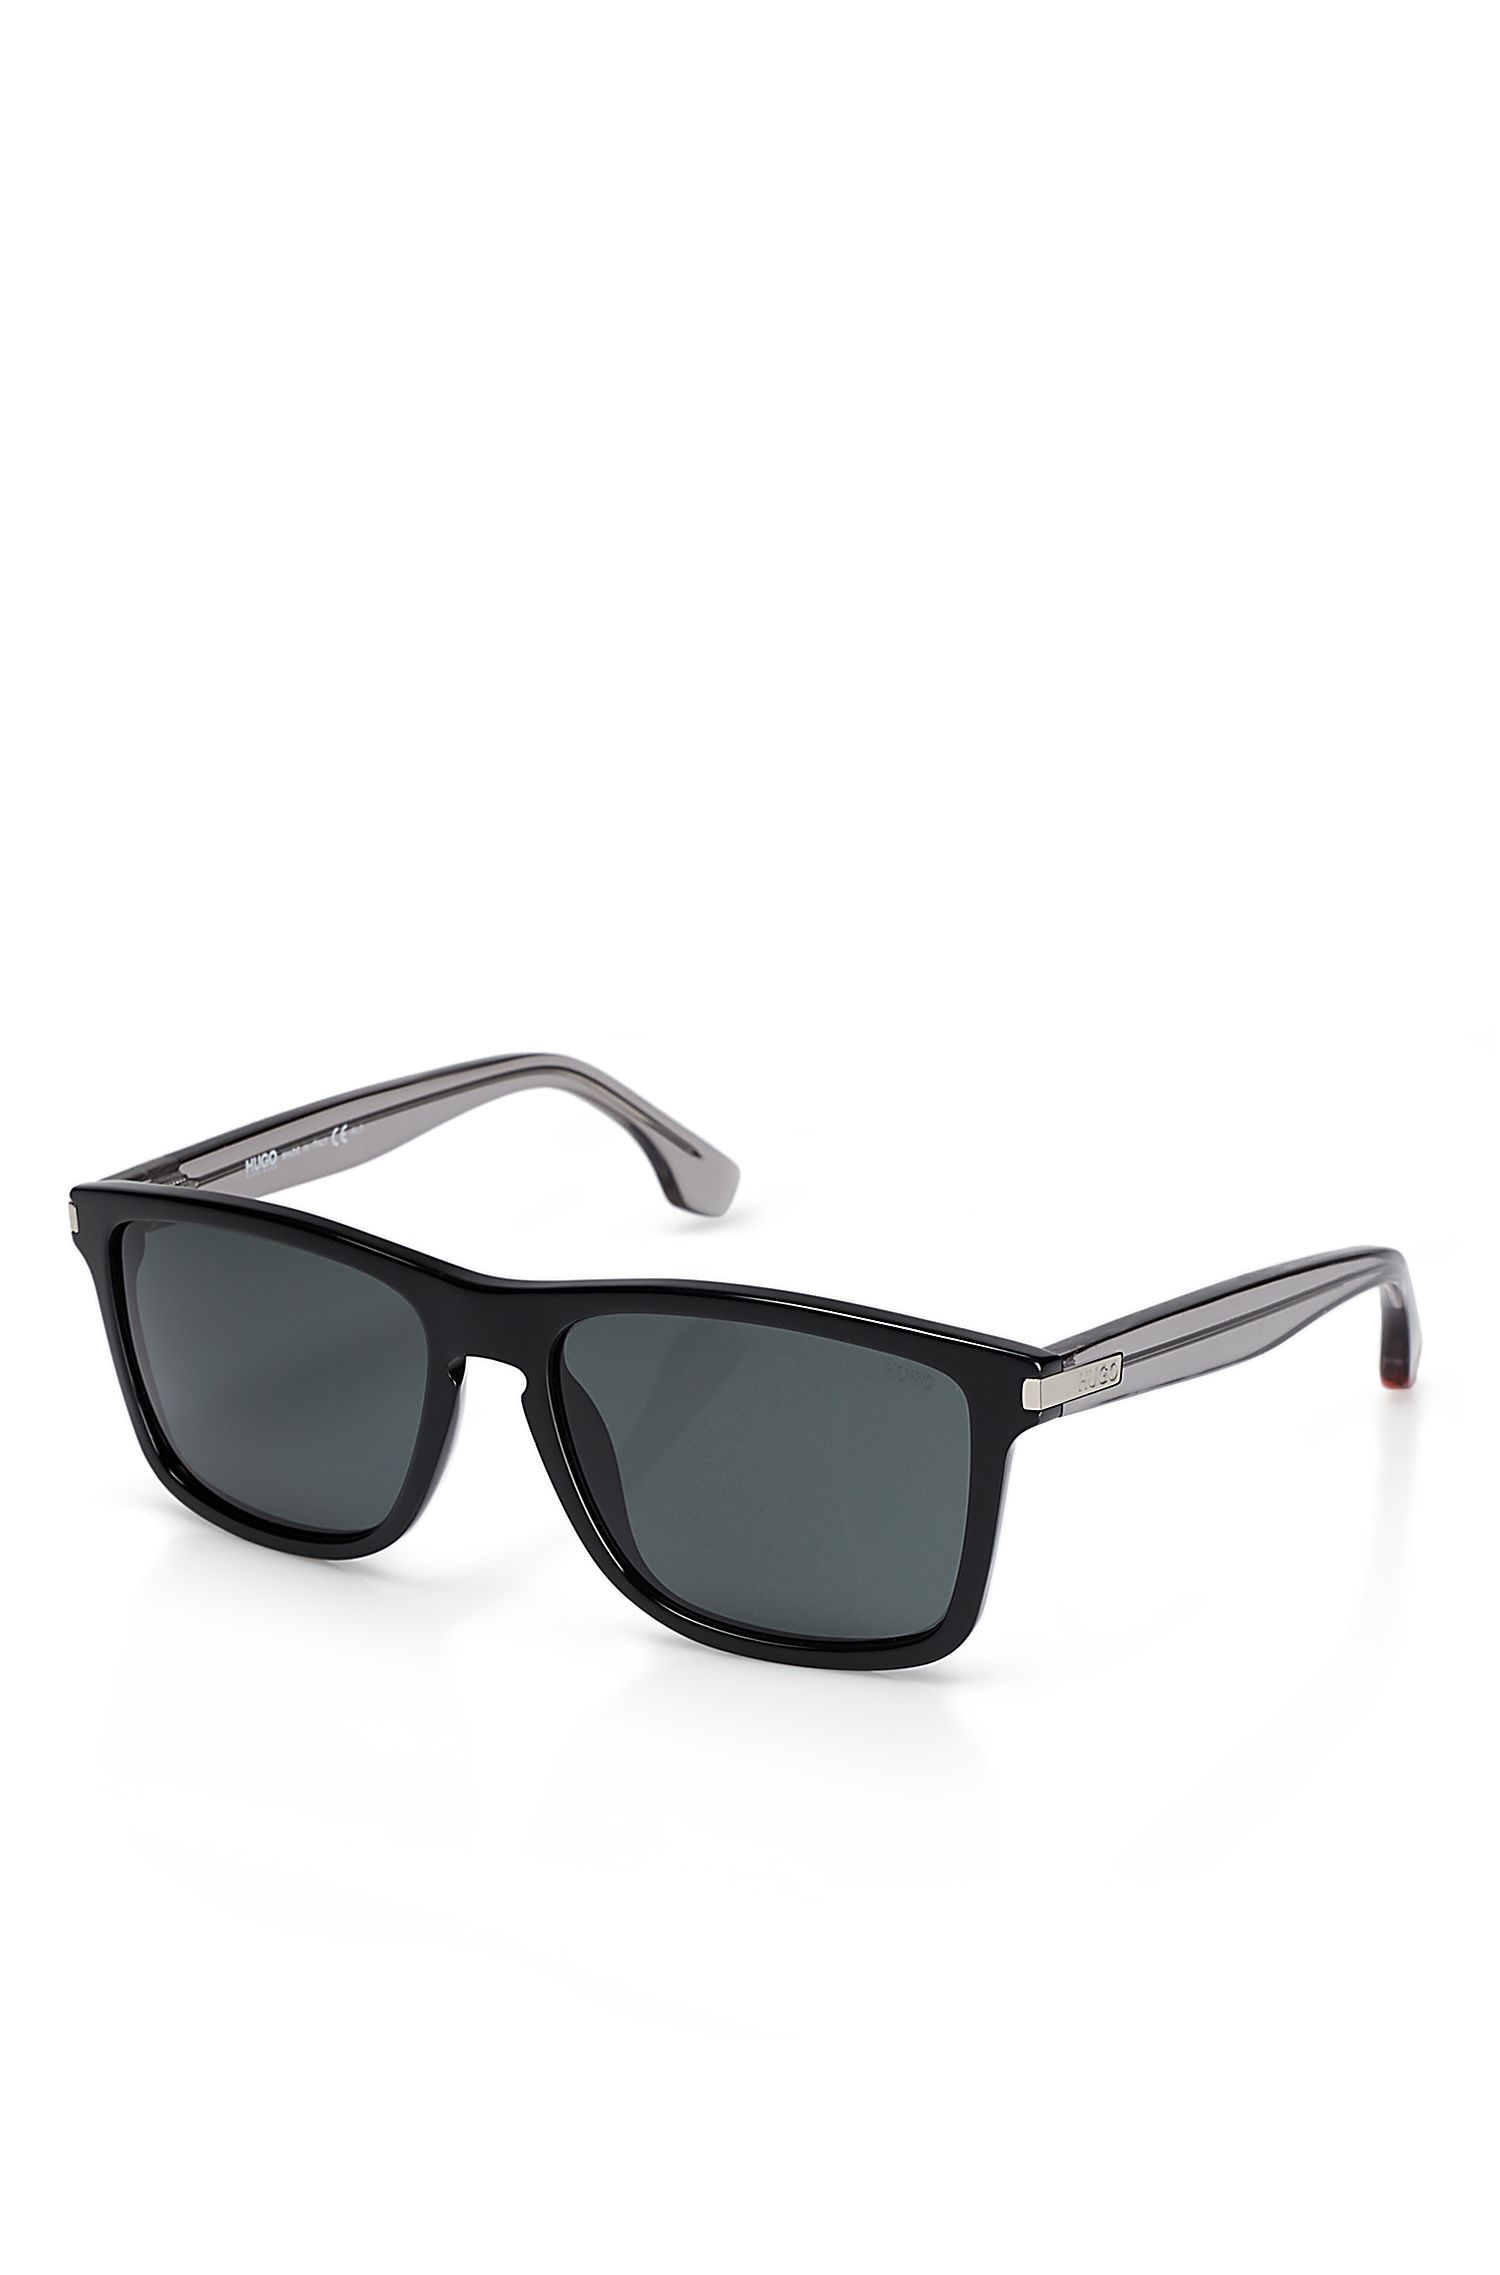 'Sunglasses' | Solid Black Frame Sunglasses